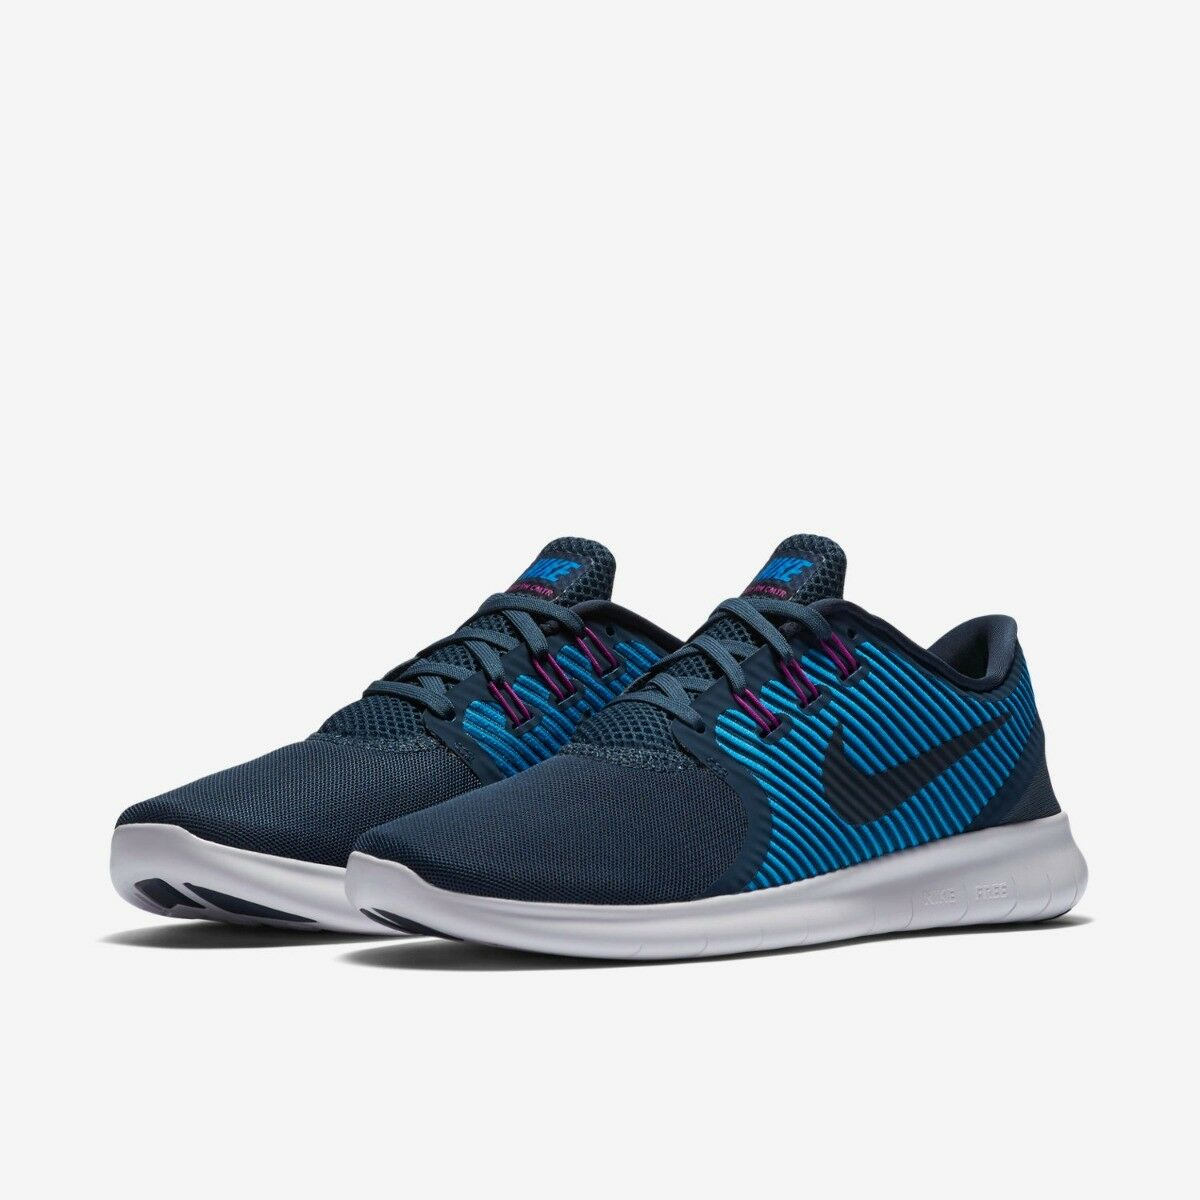 FEMMES NIKE FREE chaussures courir cmtr taille 3.5 4 BLEUS chaussures FREE Course NEUF 2cd2e0